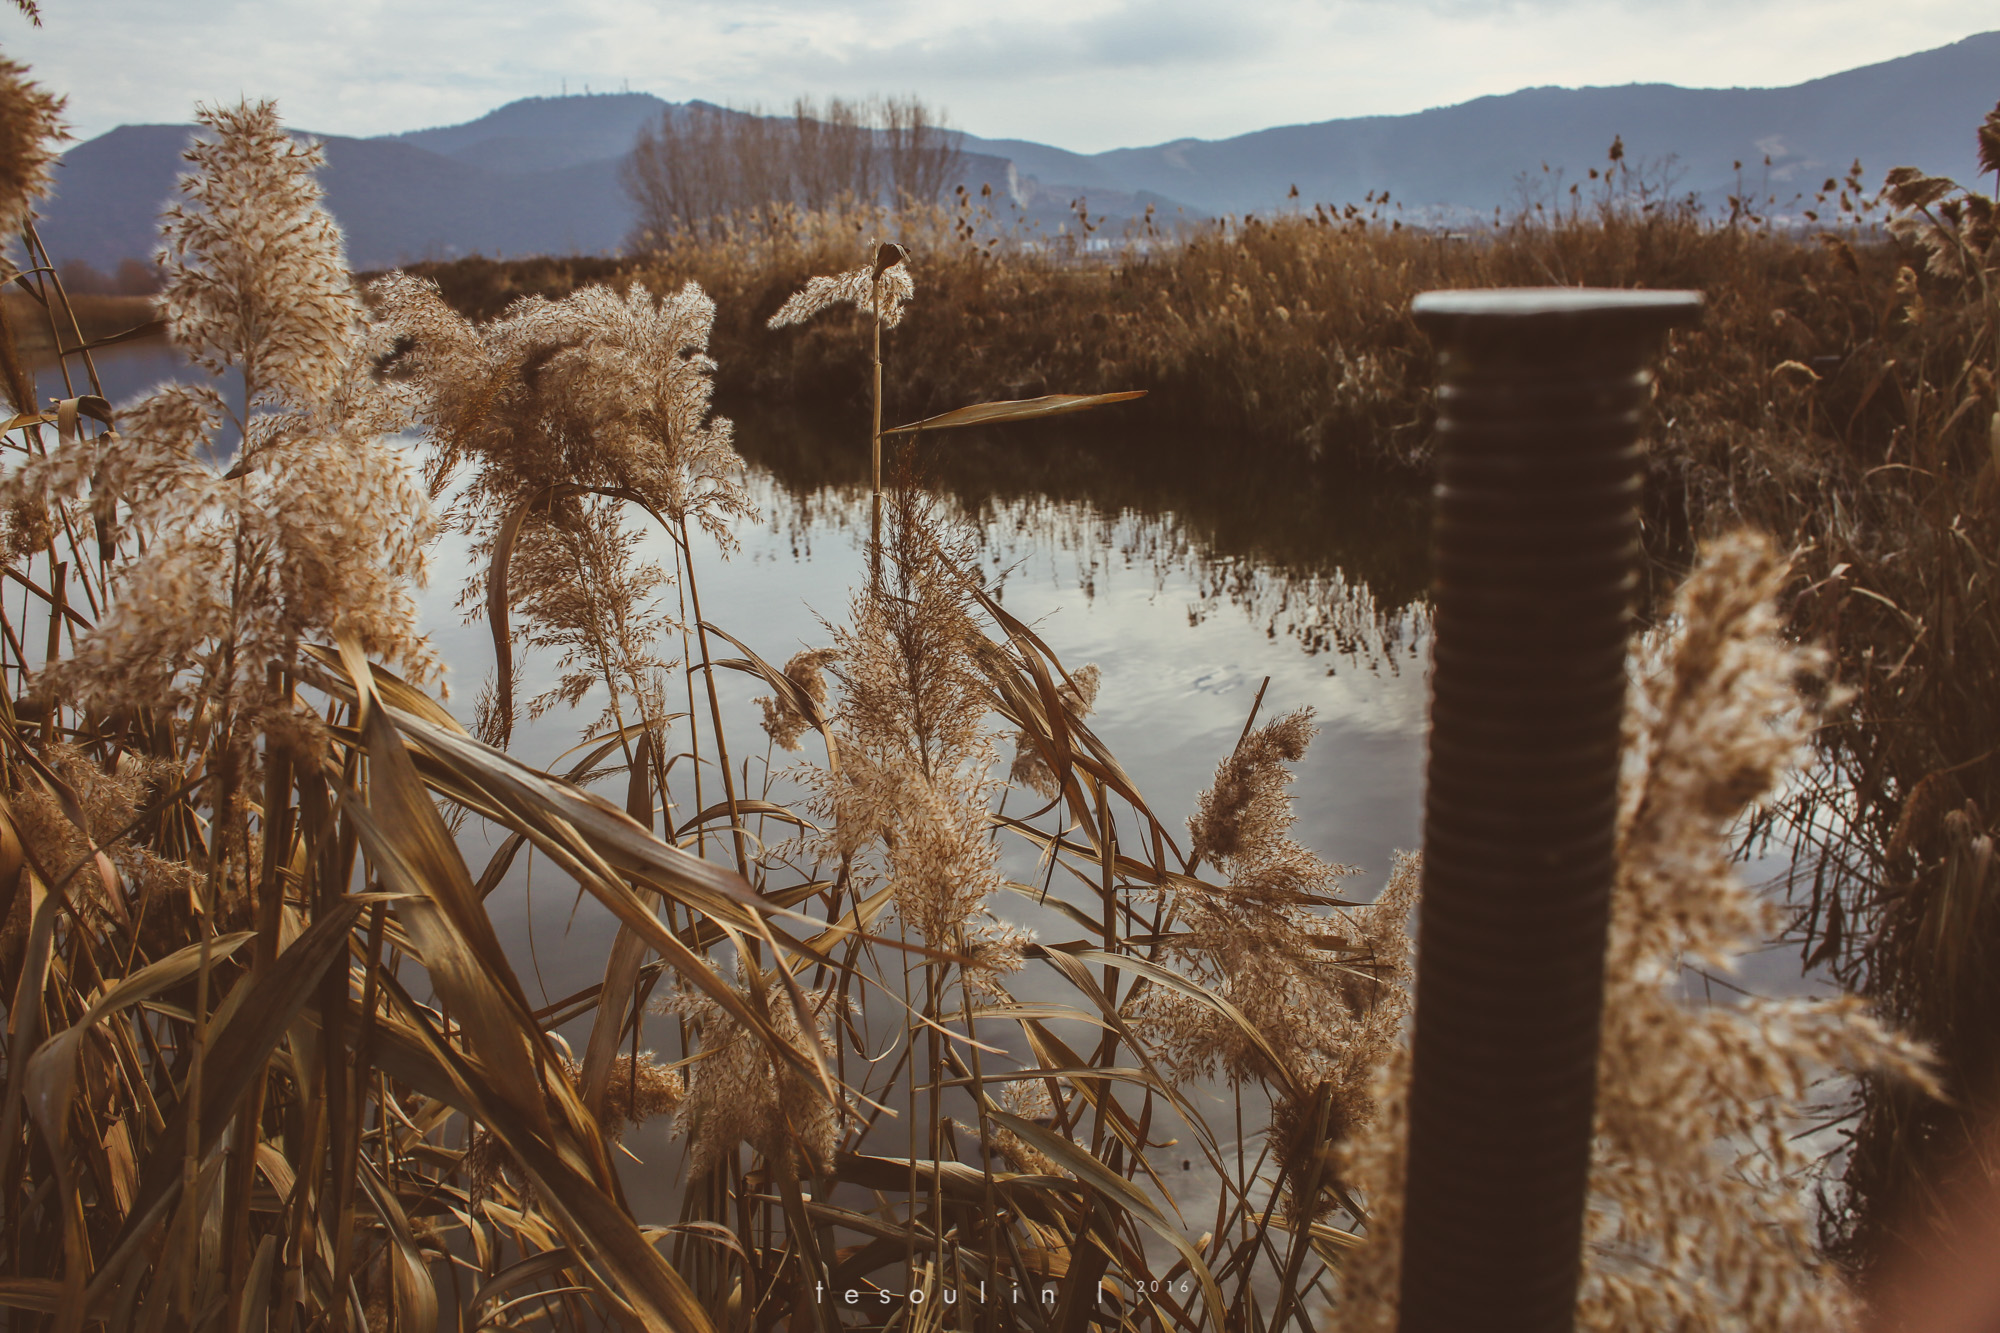 tesoulin_worked-nature-5